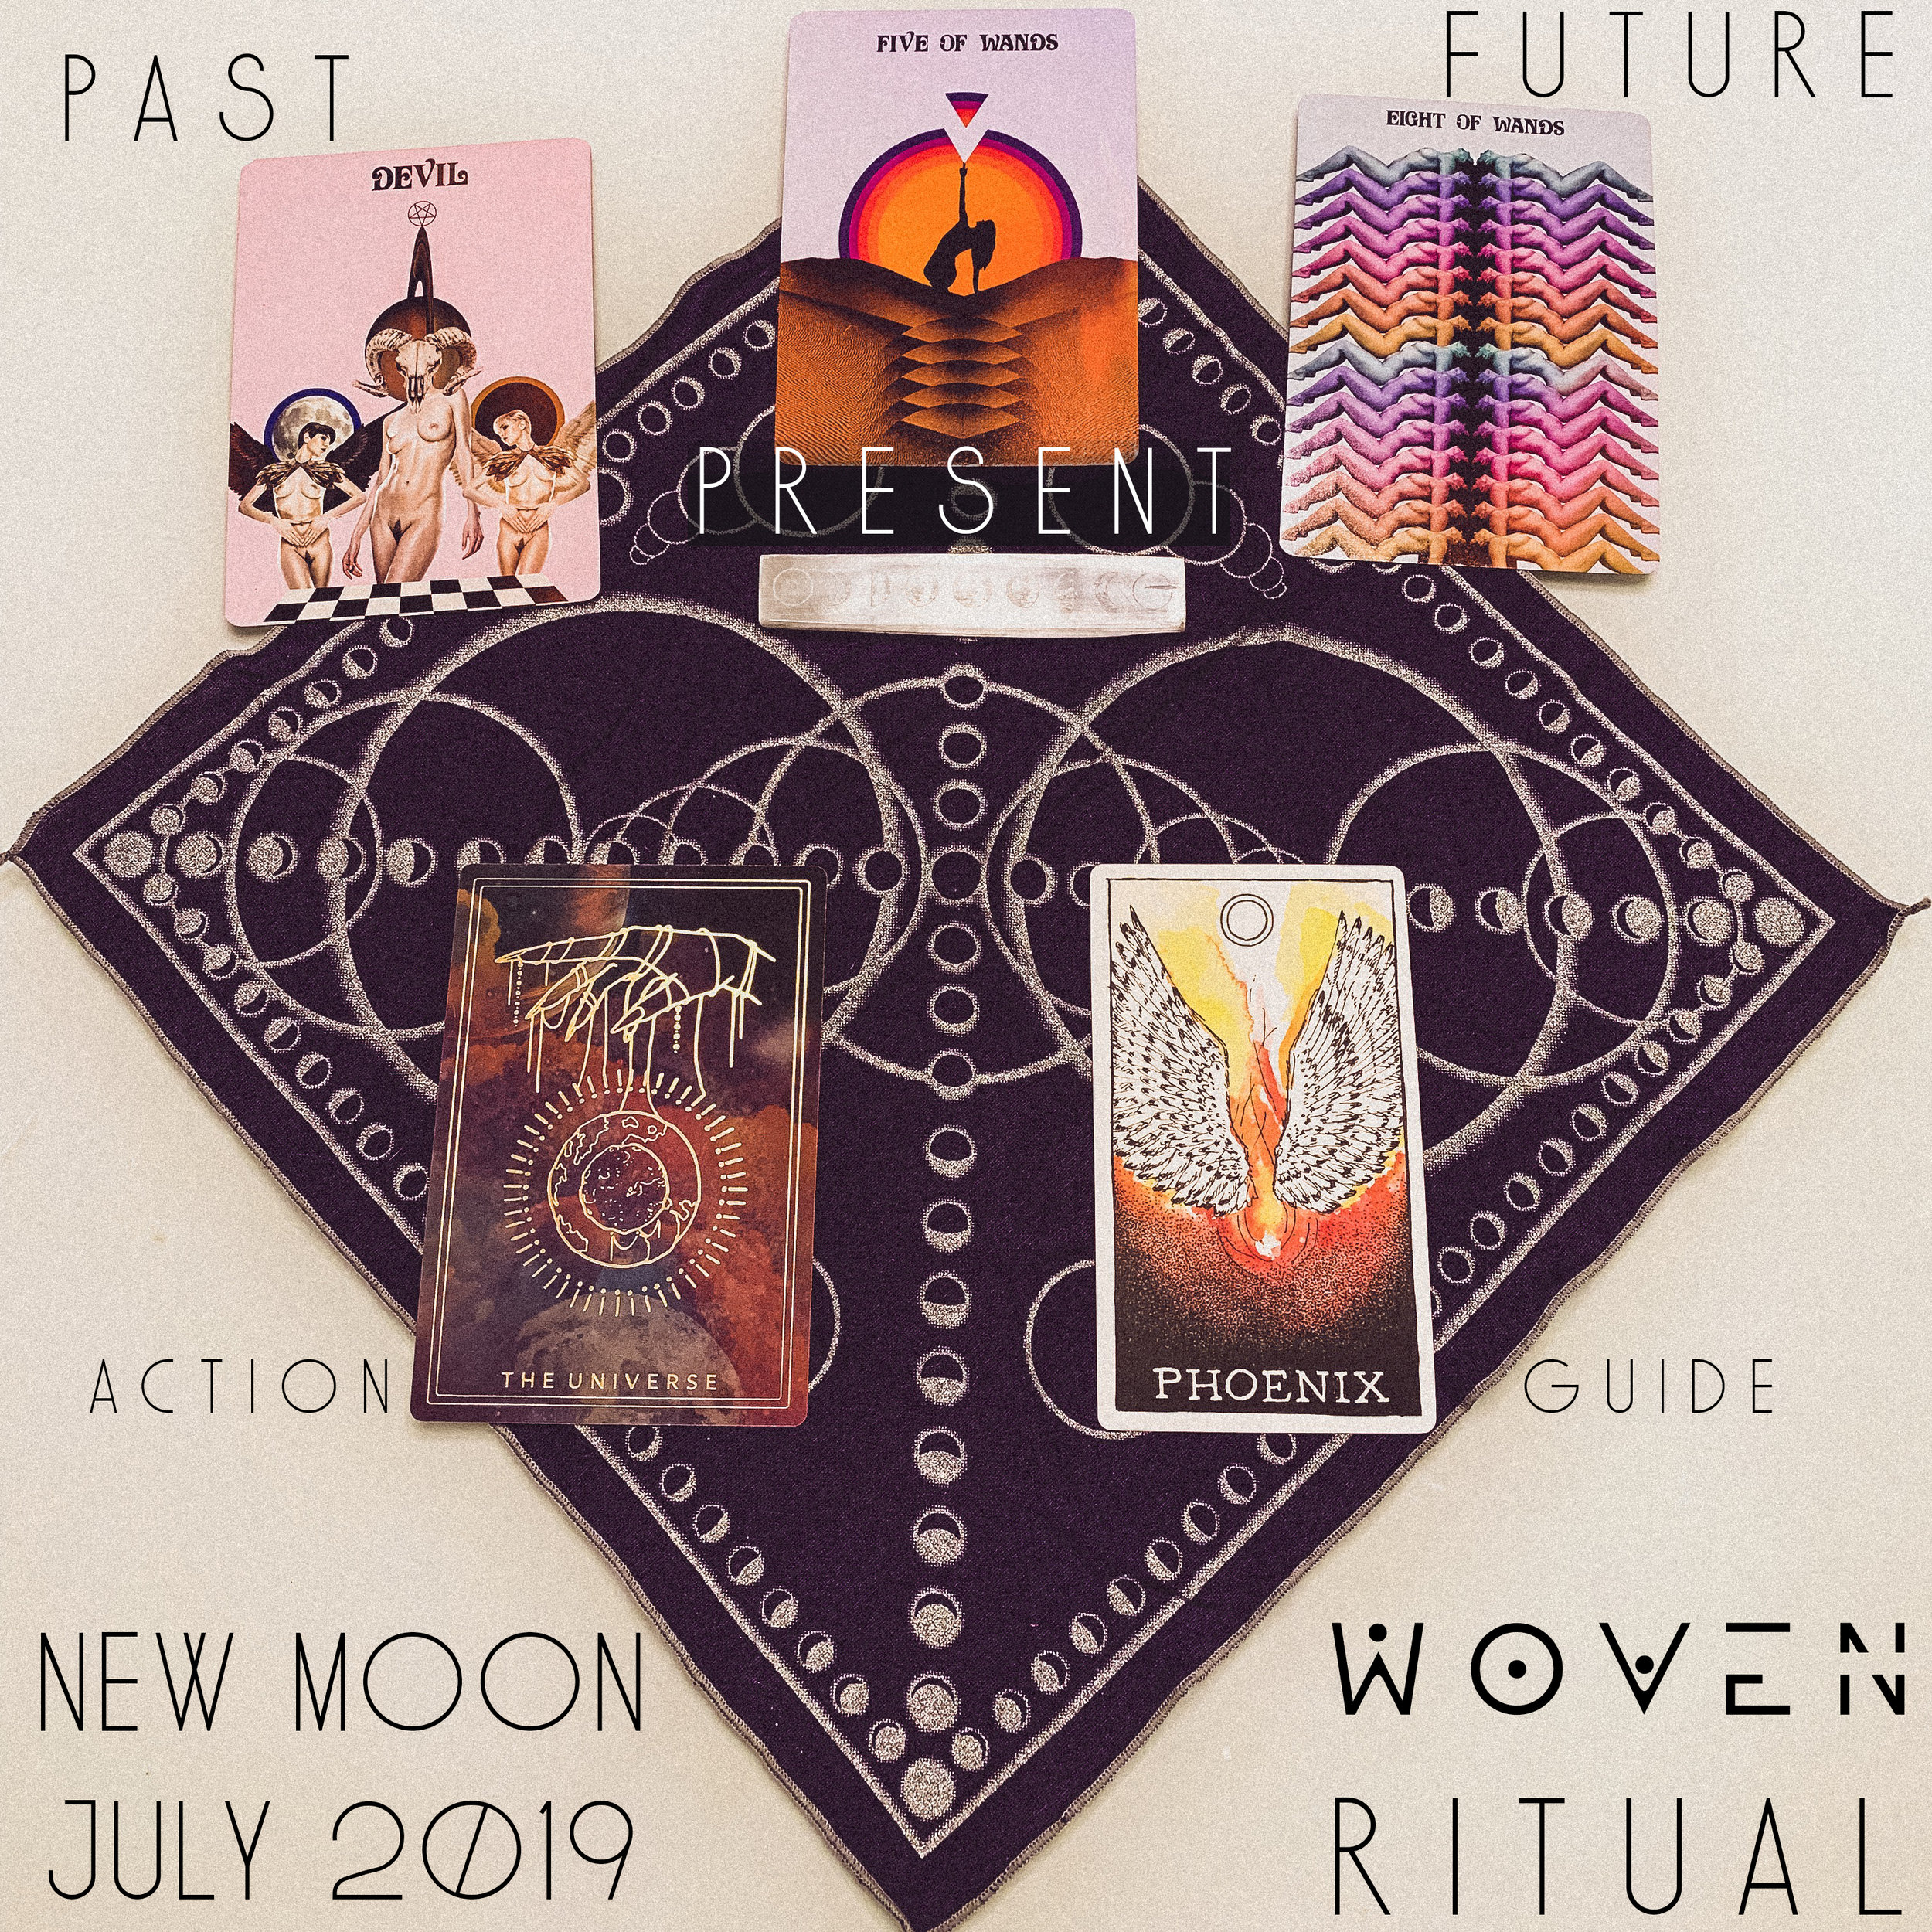 New Moon Tarot July 2019.jpg